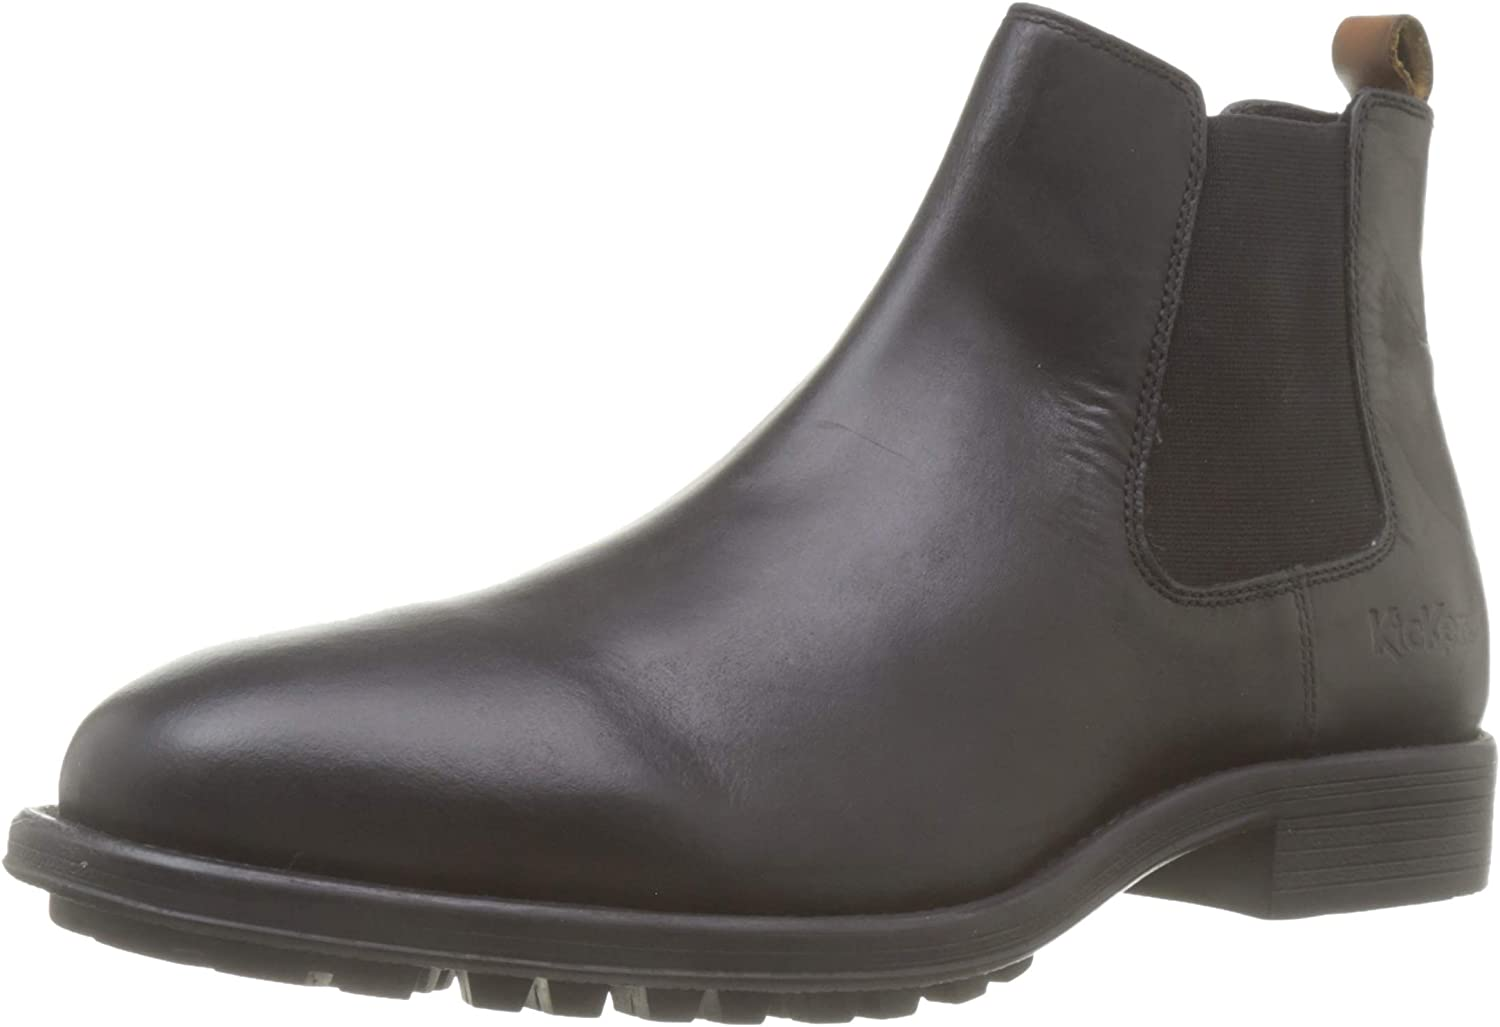 Kickers Men's Chelsea 67% OFF of fixed price Boots 25% OFF Classic